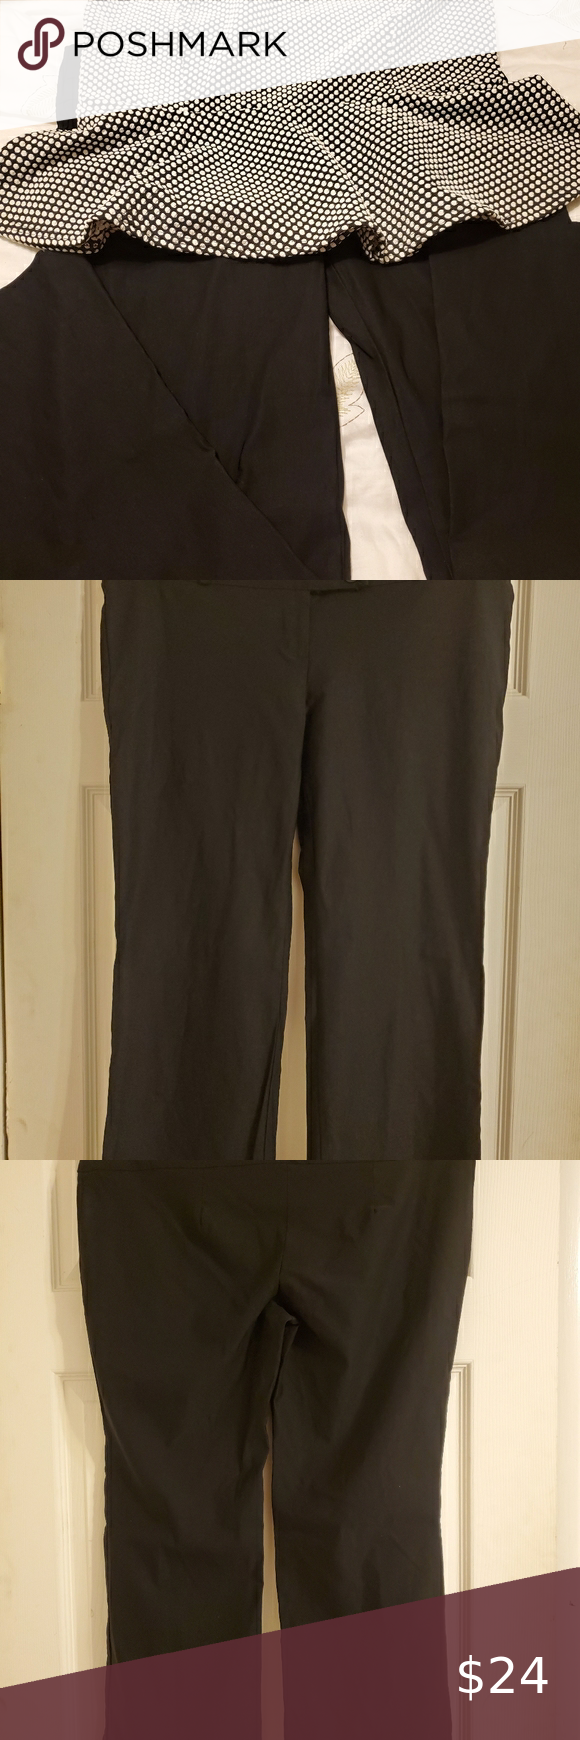 Black Belted Dress Casual Pant Belted Dress Casual Casual Dresses Fitted Dress Pants [ 1740 x 580 Pixel ]